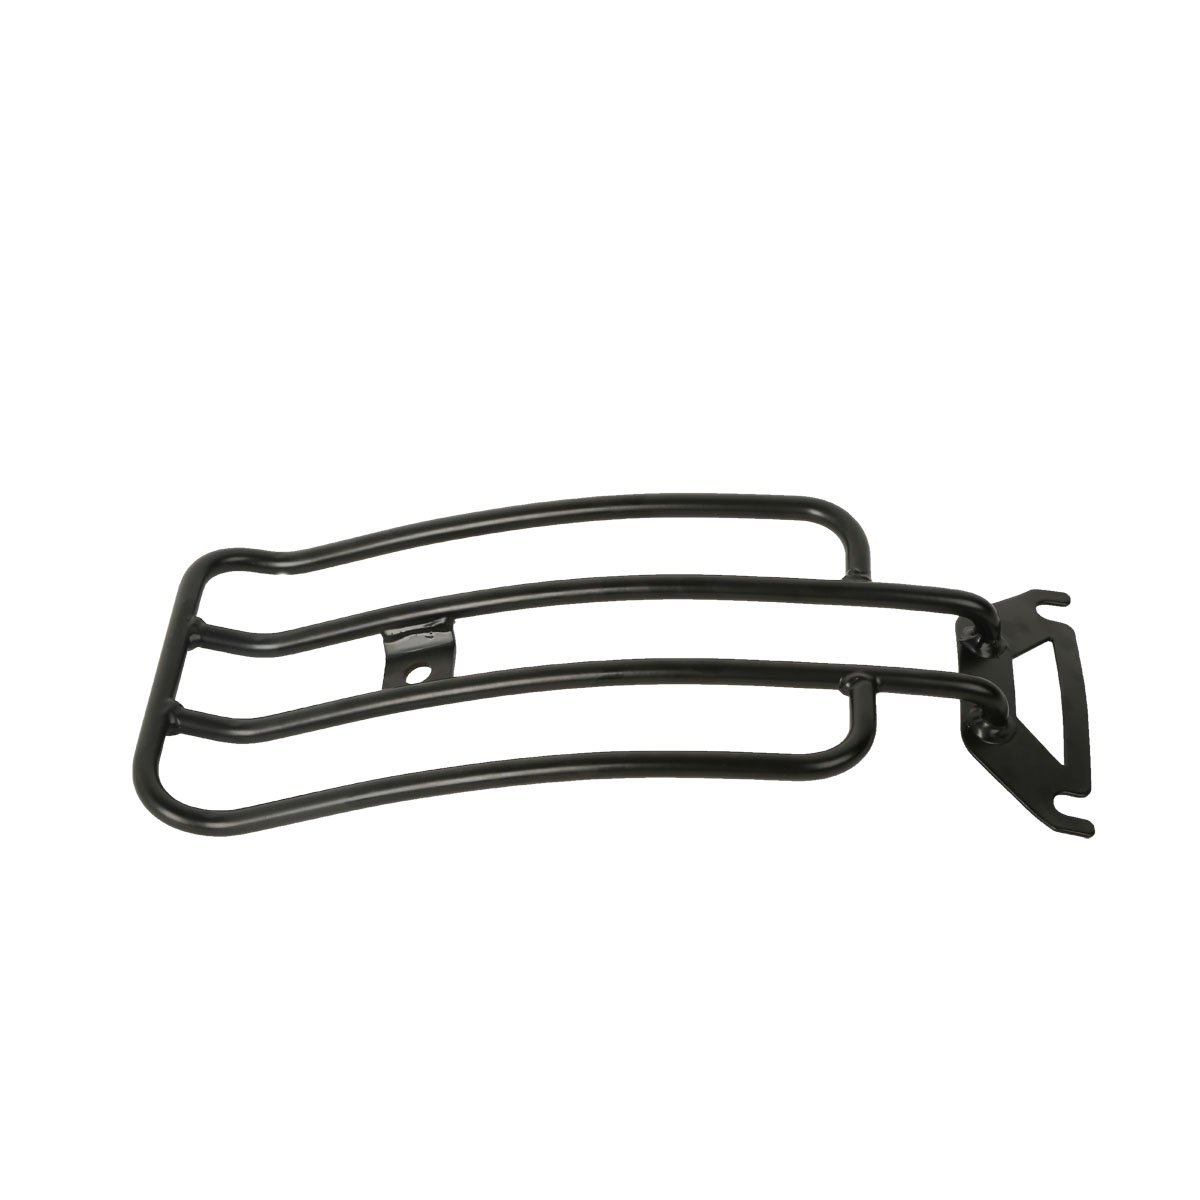 XMT-MOTOR Solo Seat Luggage Rack Chrome for Harley Davidson Touring Electra Glide Road King FLHT FLHR 1997-2005